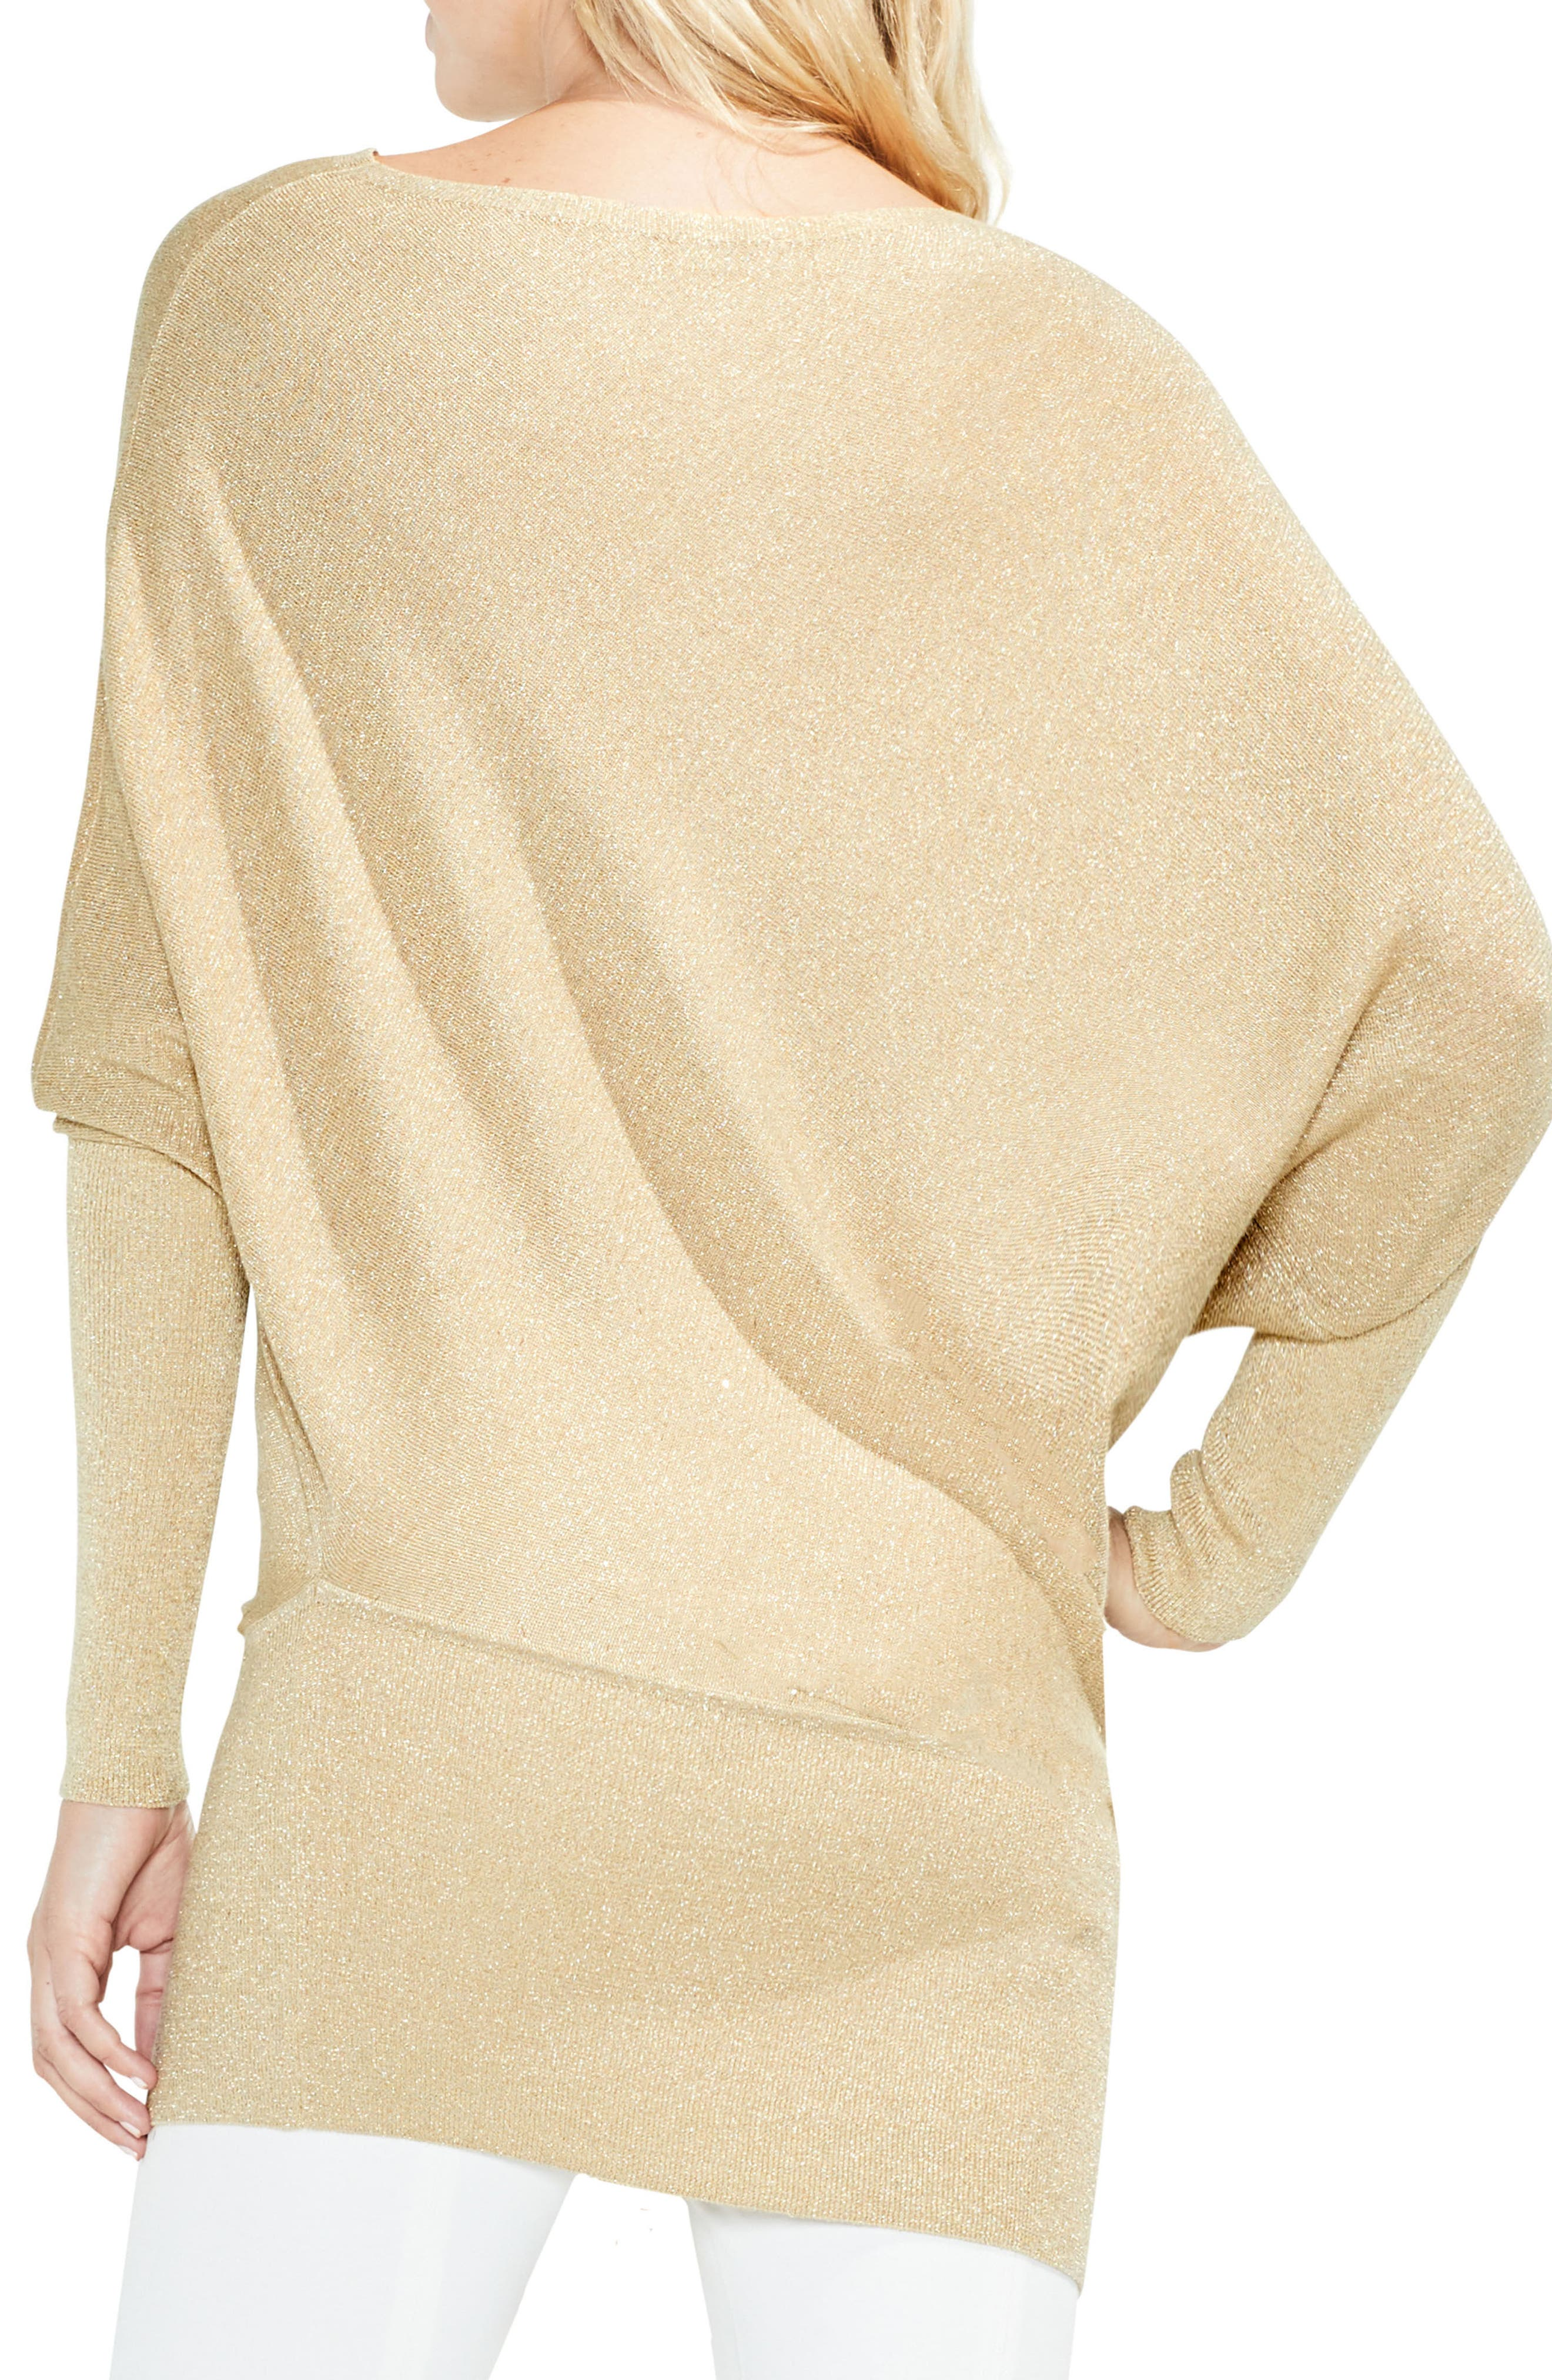 Batwing Sleeve Metallic Sweater,                             Alternate thumbnail 2, color,                             Bisque